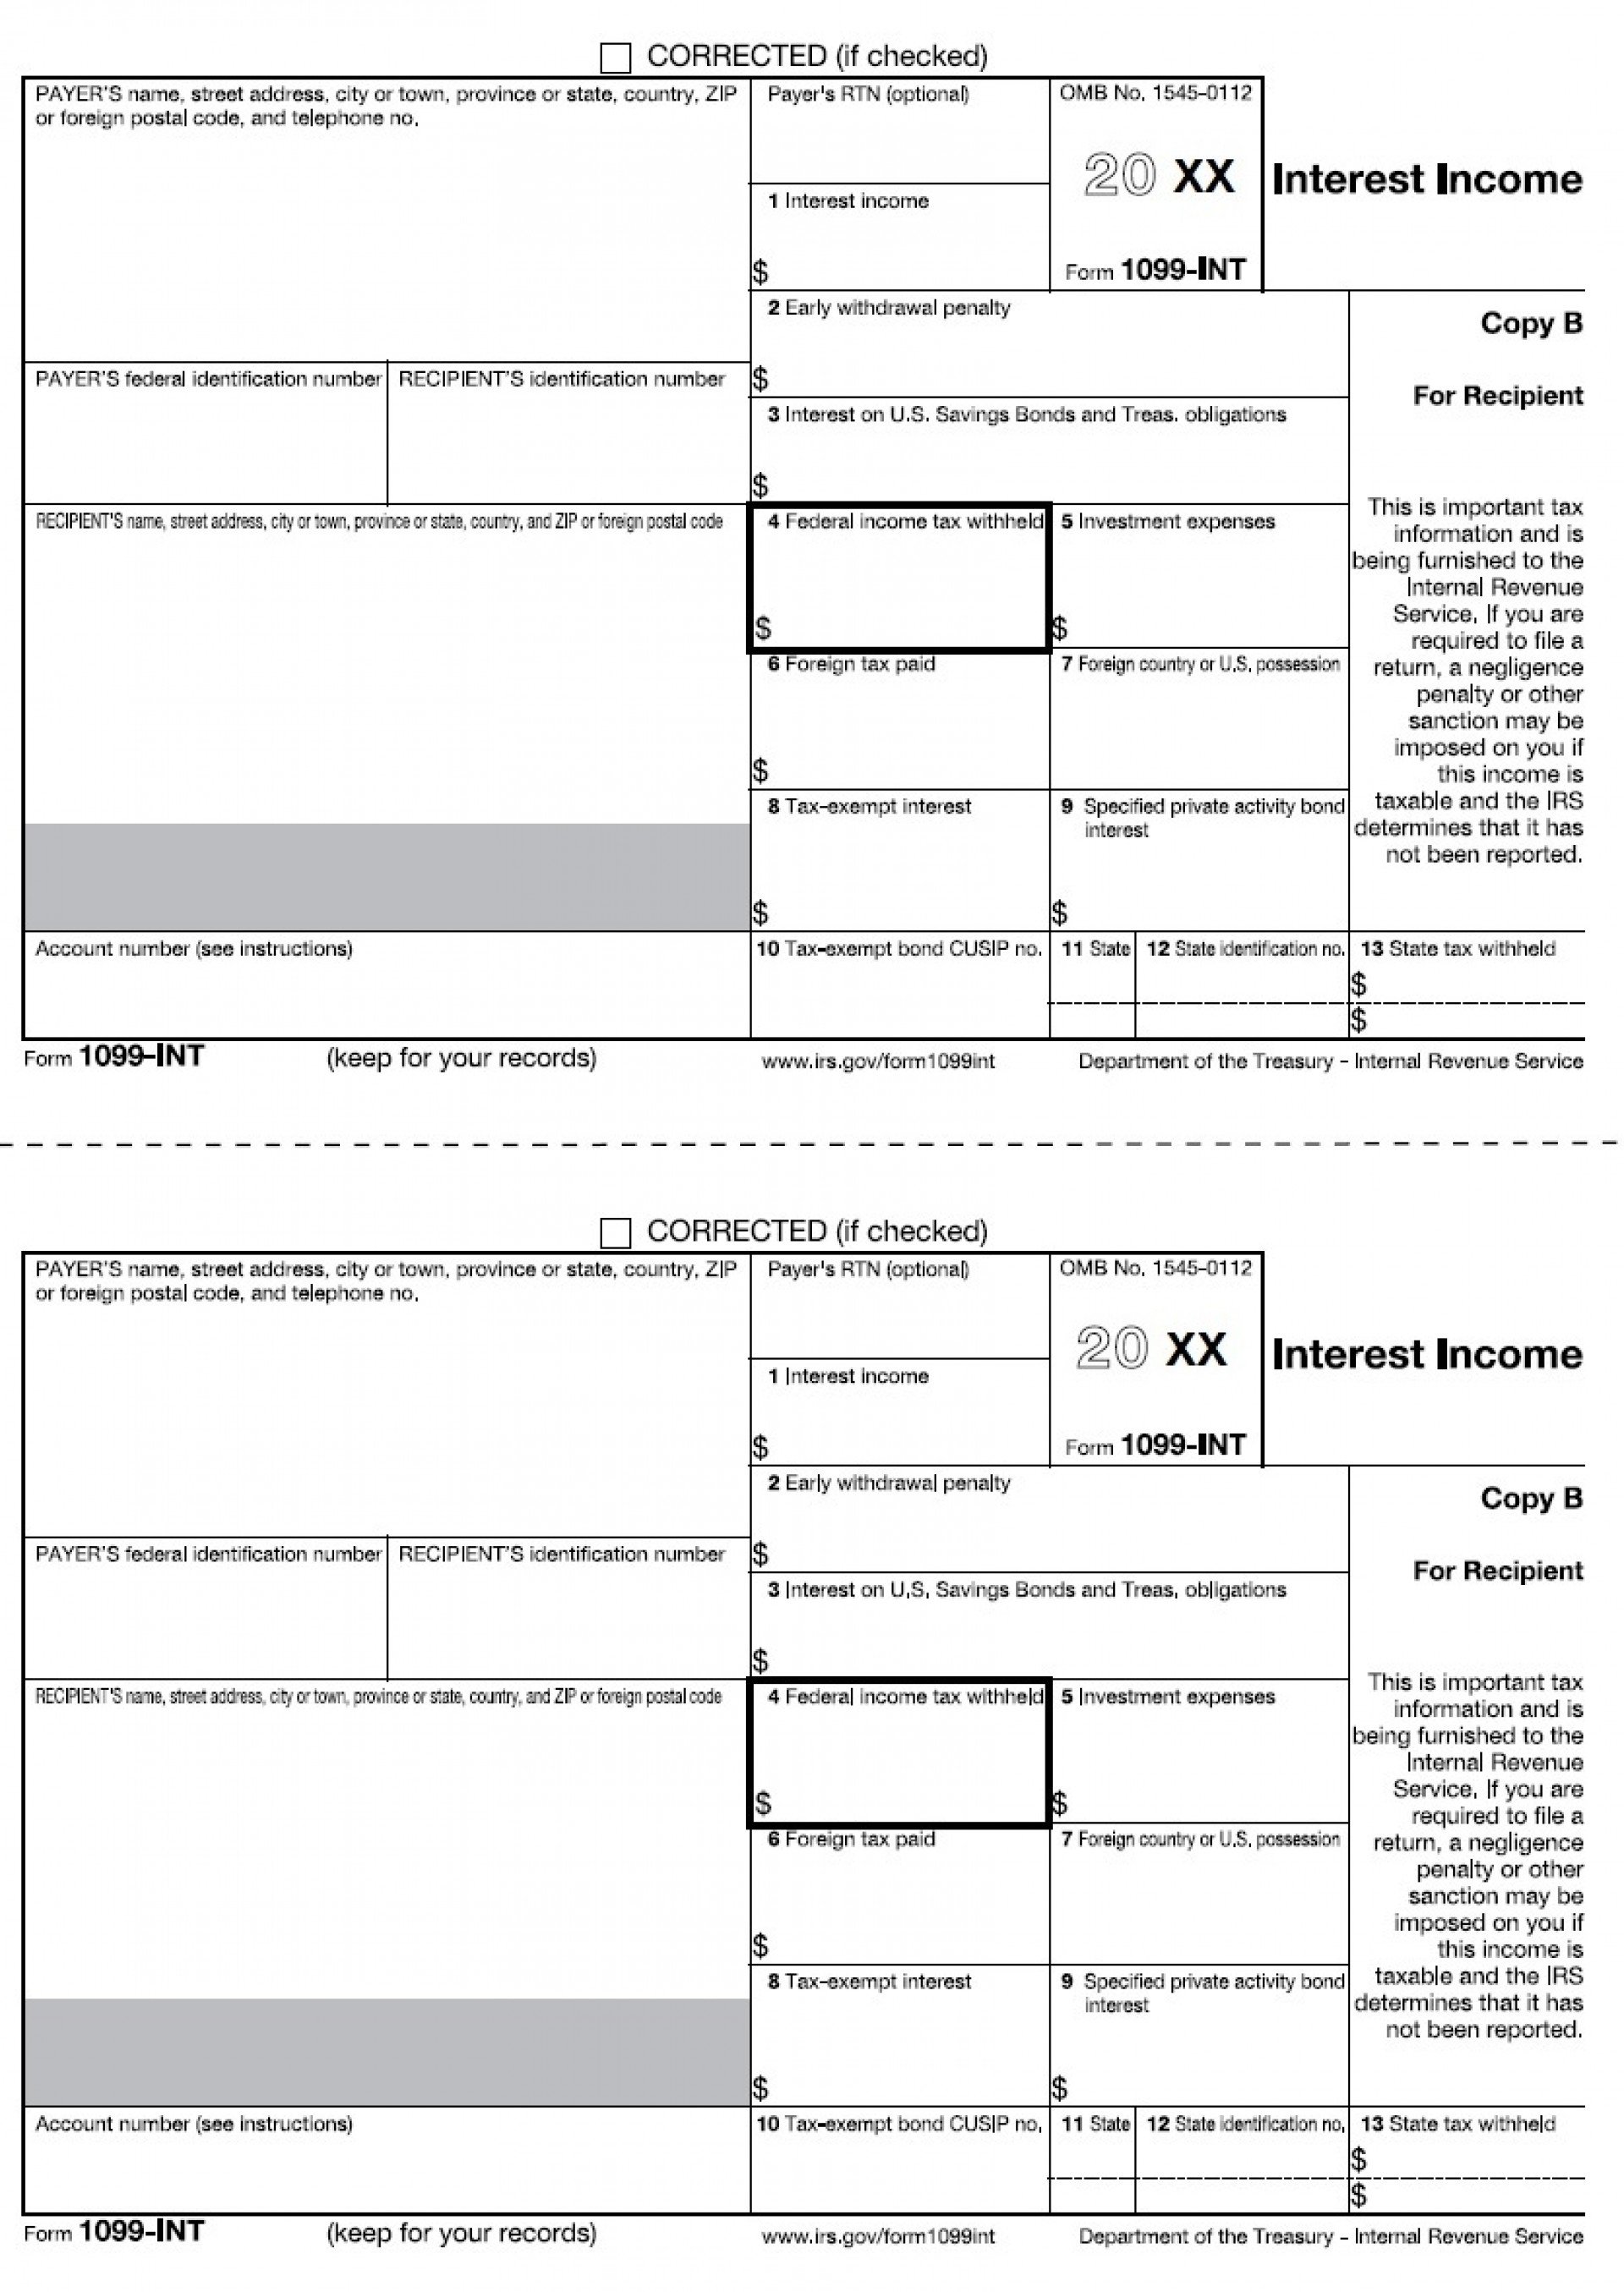 What Is A 1099 Int Tax Form Used For